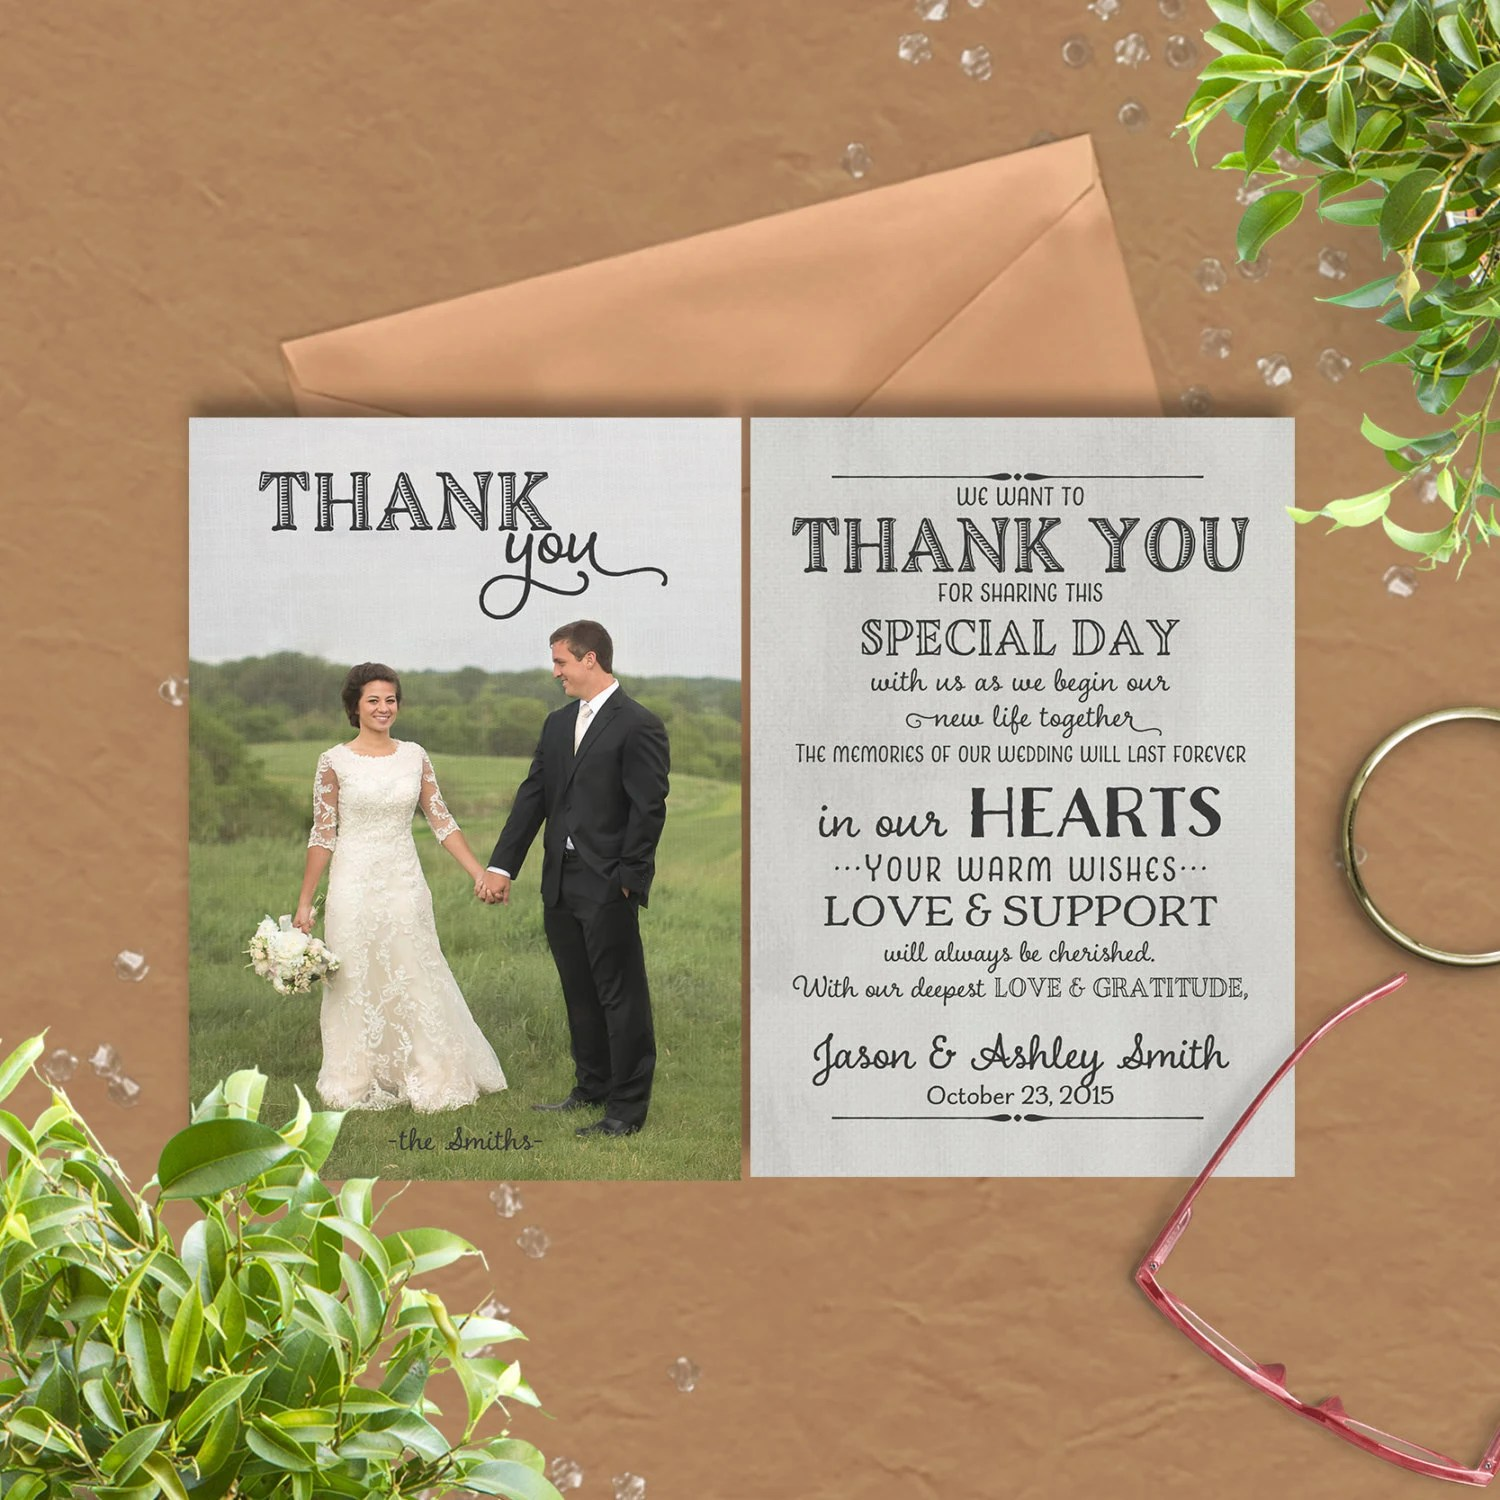 Wedding Thank You Card with pre-printed Thank You Message on Etsy